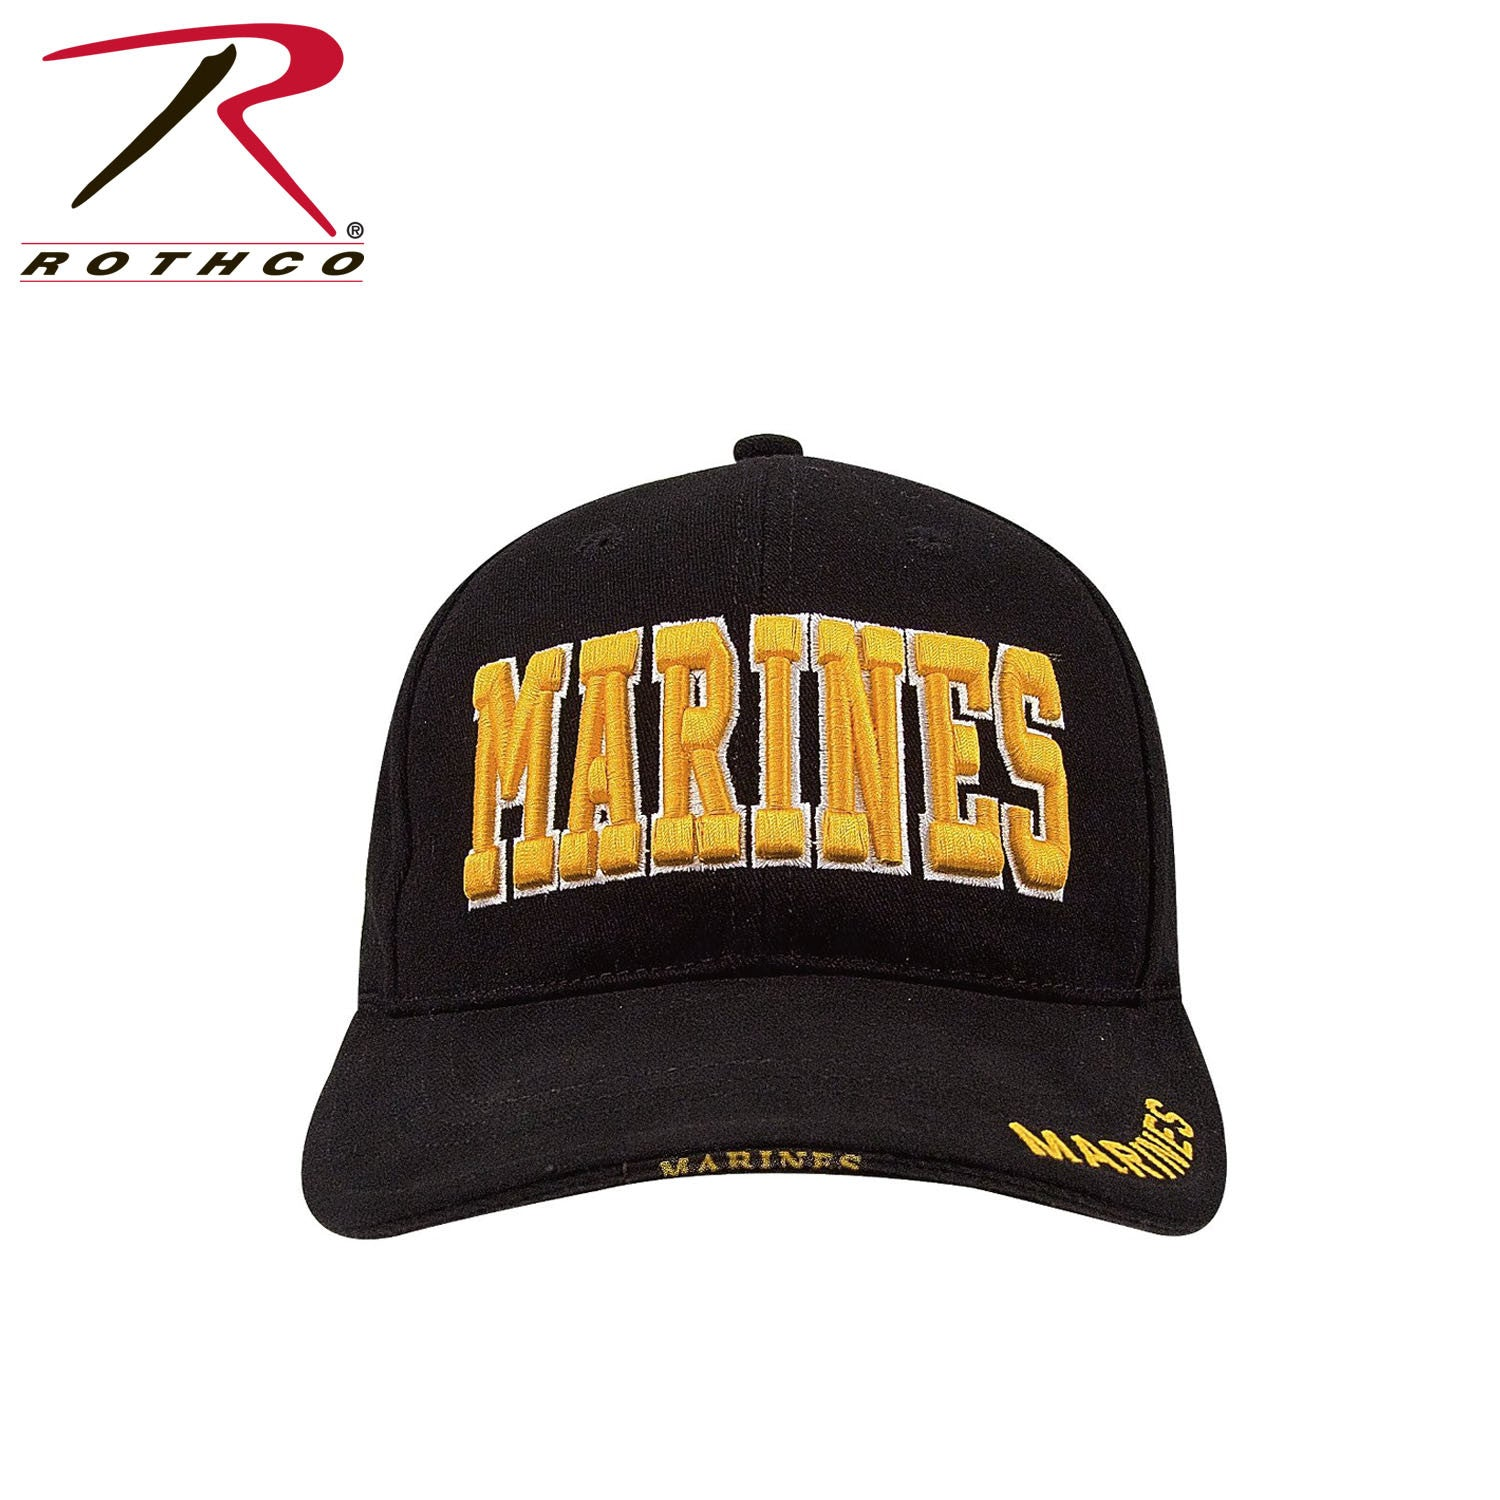 ab1ef5116a6 Rothco Deluxe Marines Low Profile Insignia Cap - GI Jeffs